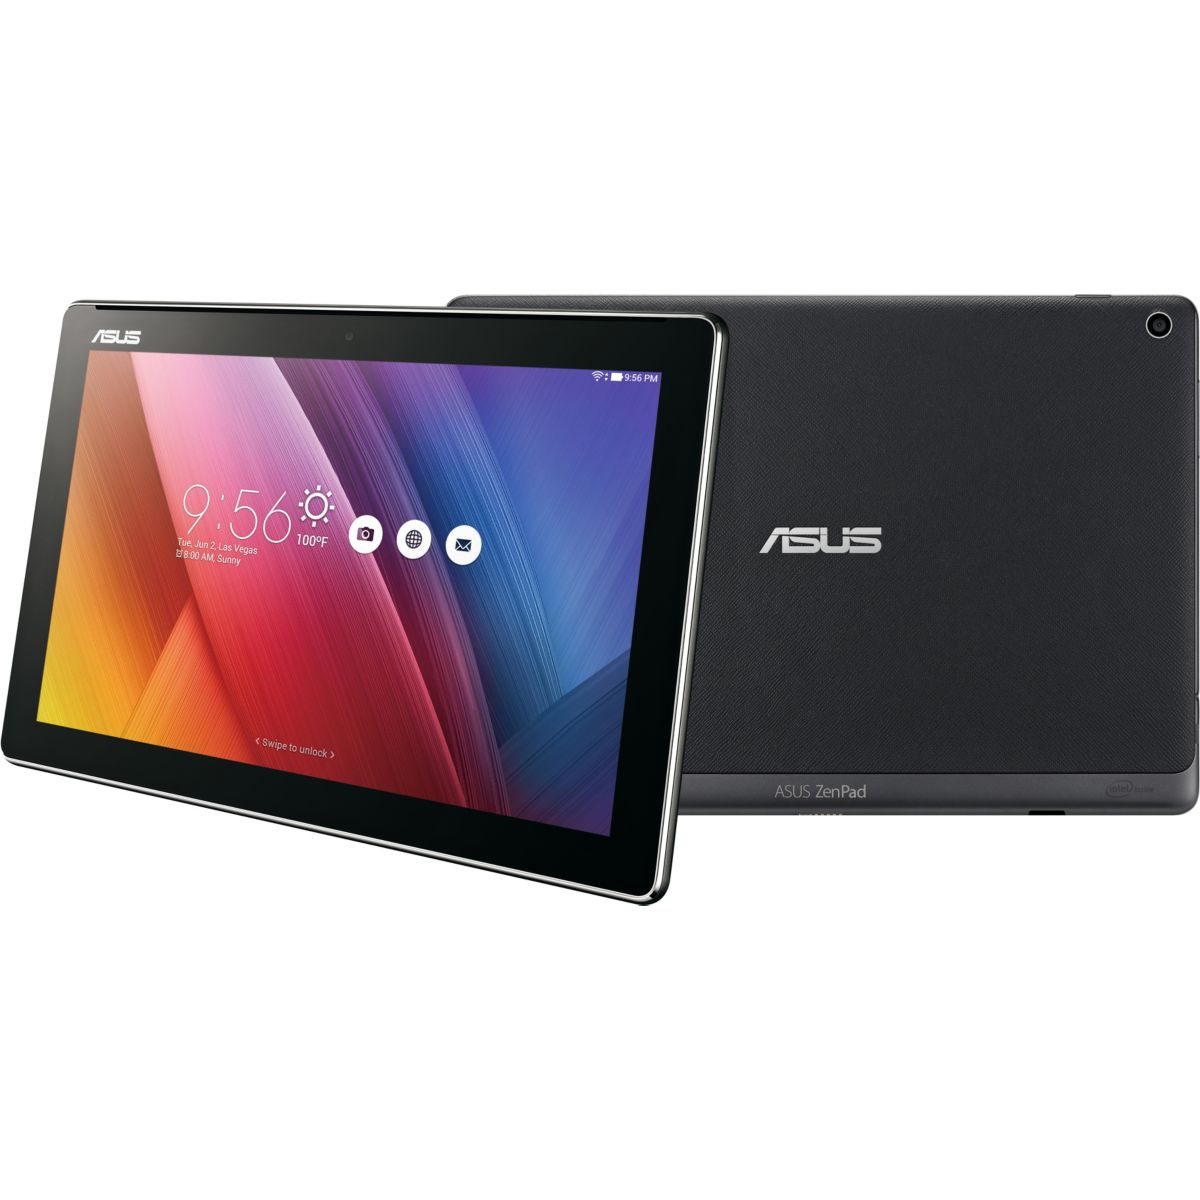 asus z310m 16 go tablette tactile 10 1 sous android 6 0. Black Bedroom Furniture Sets. Home Design Ideas